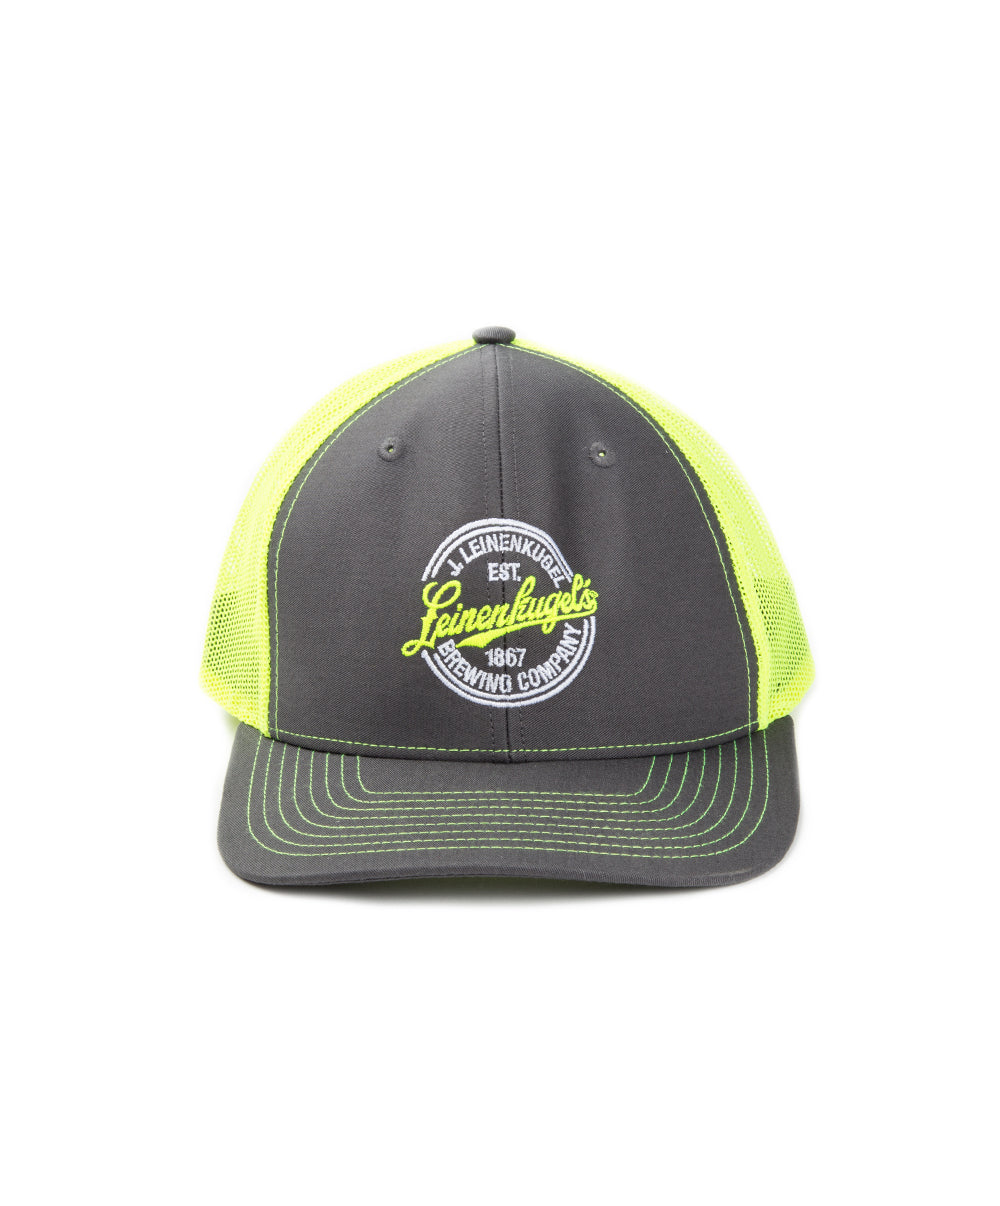 CIRCLE LOGO SAFETY HAT